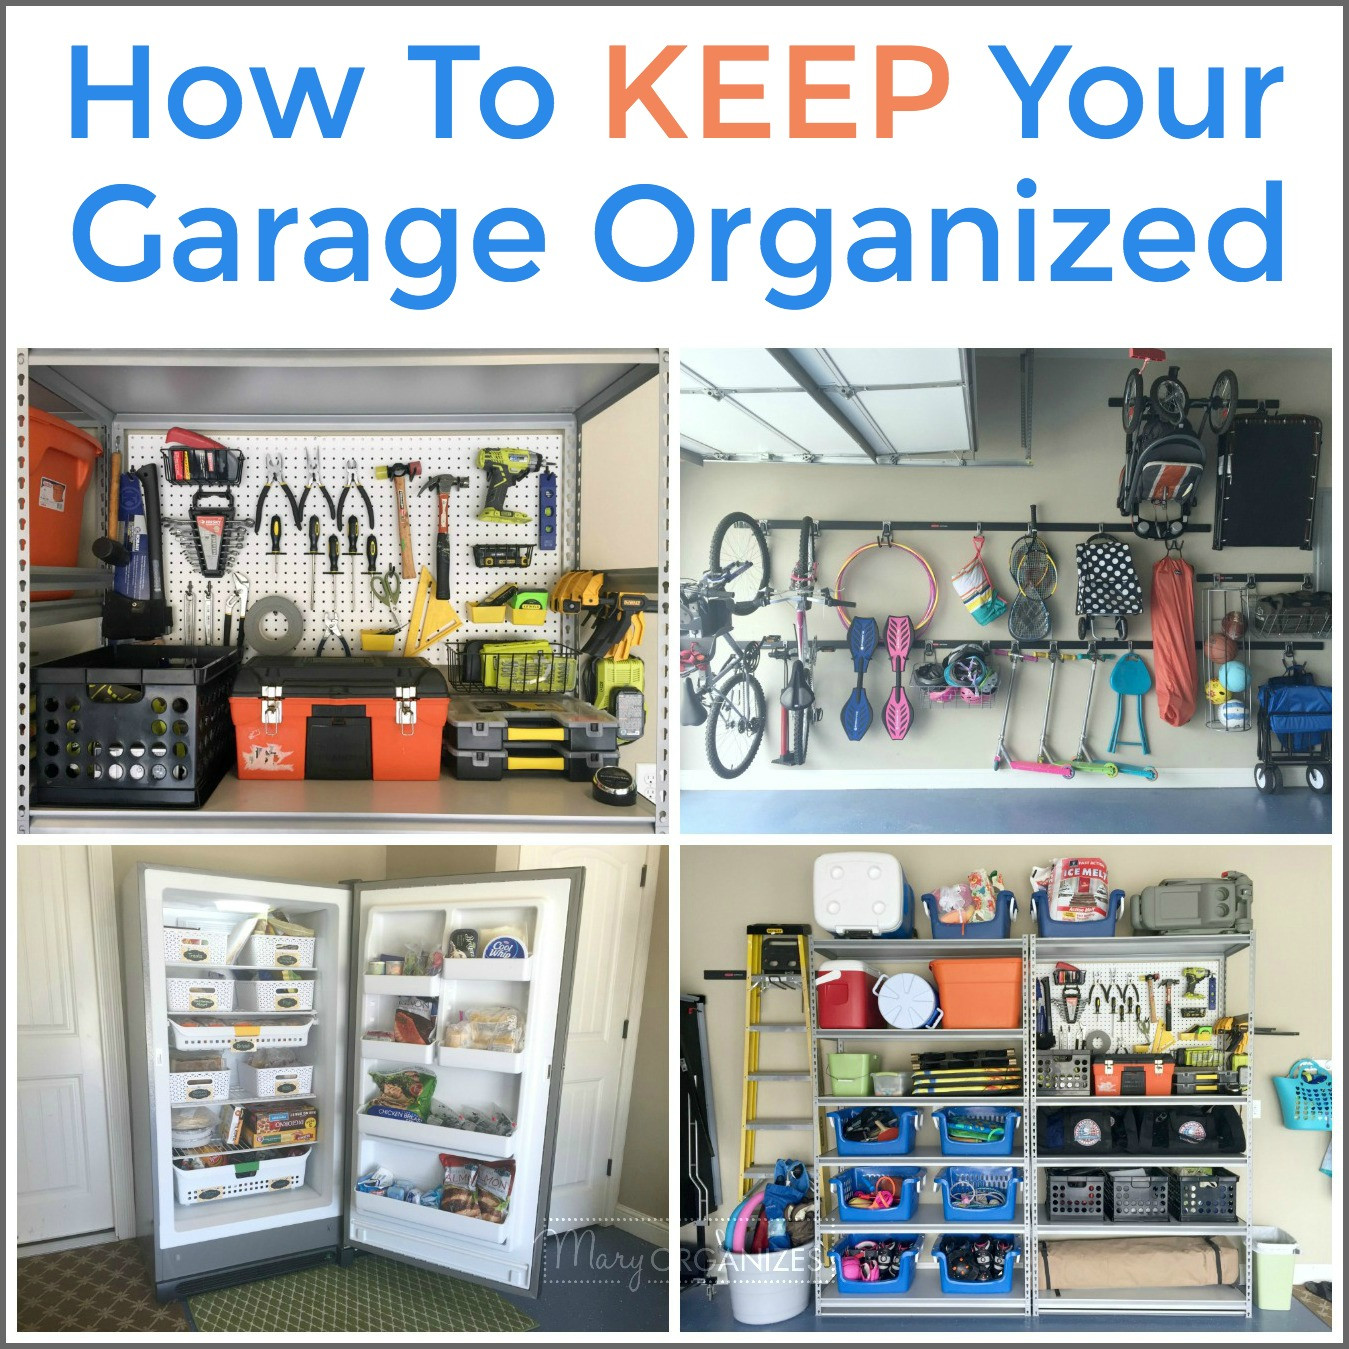 Organize Your Garage  Organize Your Garage ONE WEEK All About The Garage